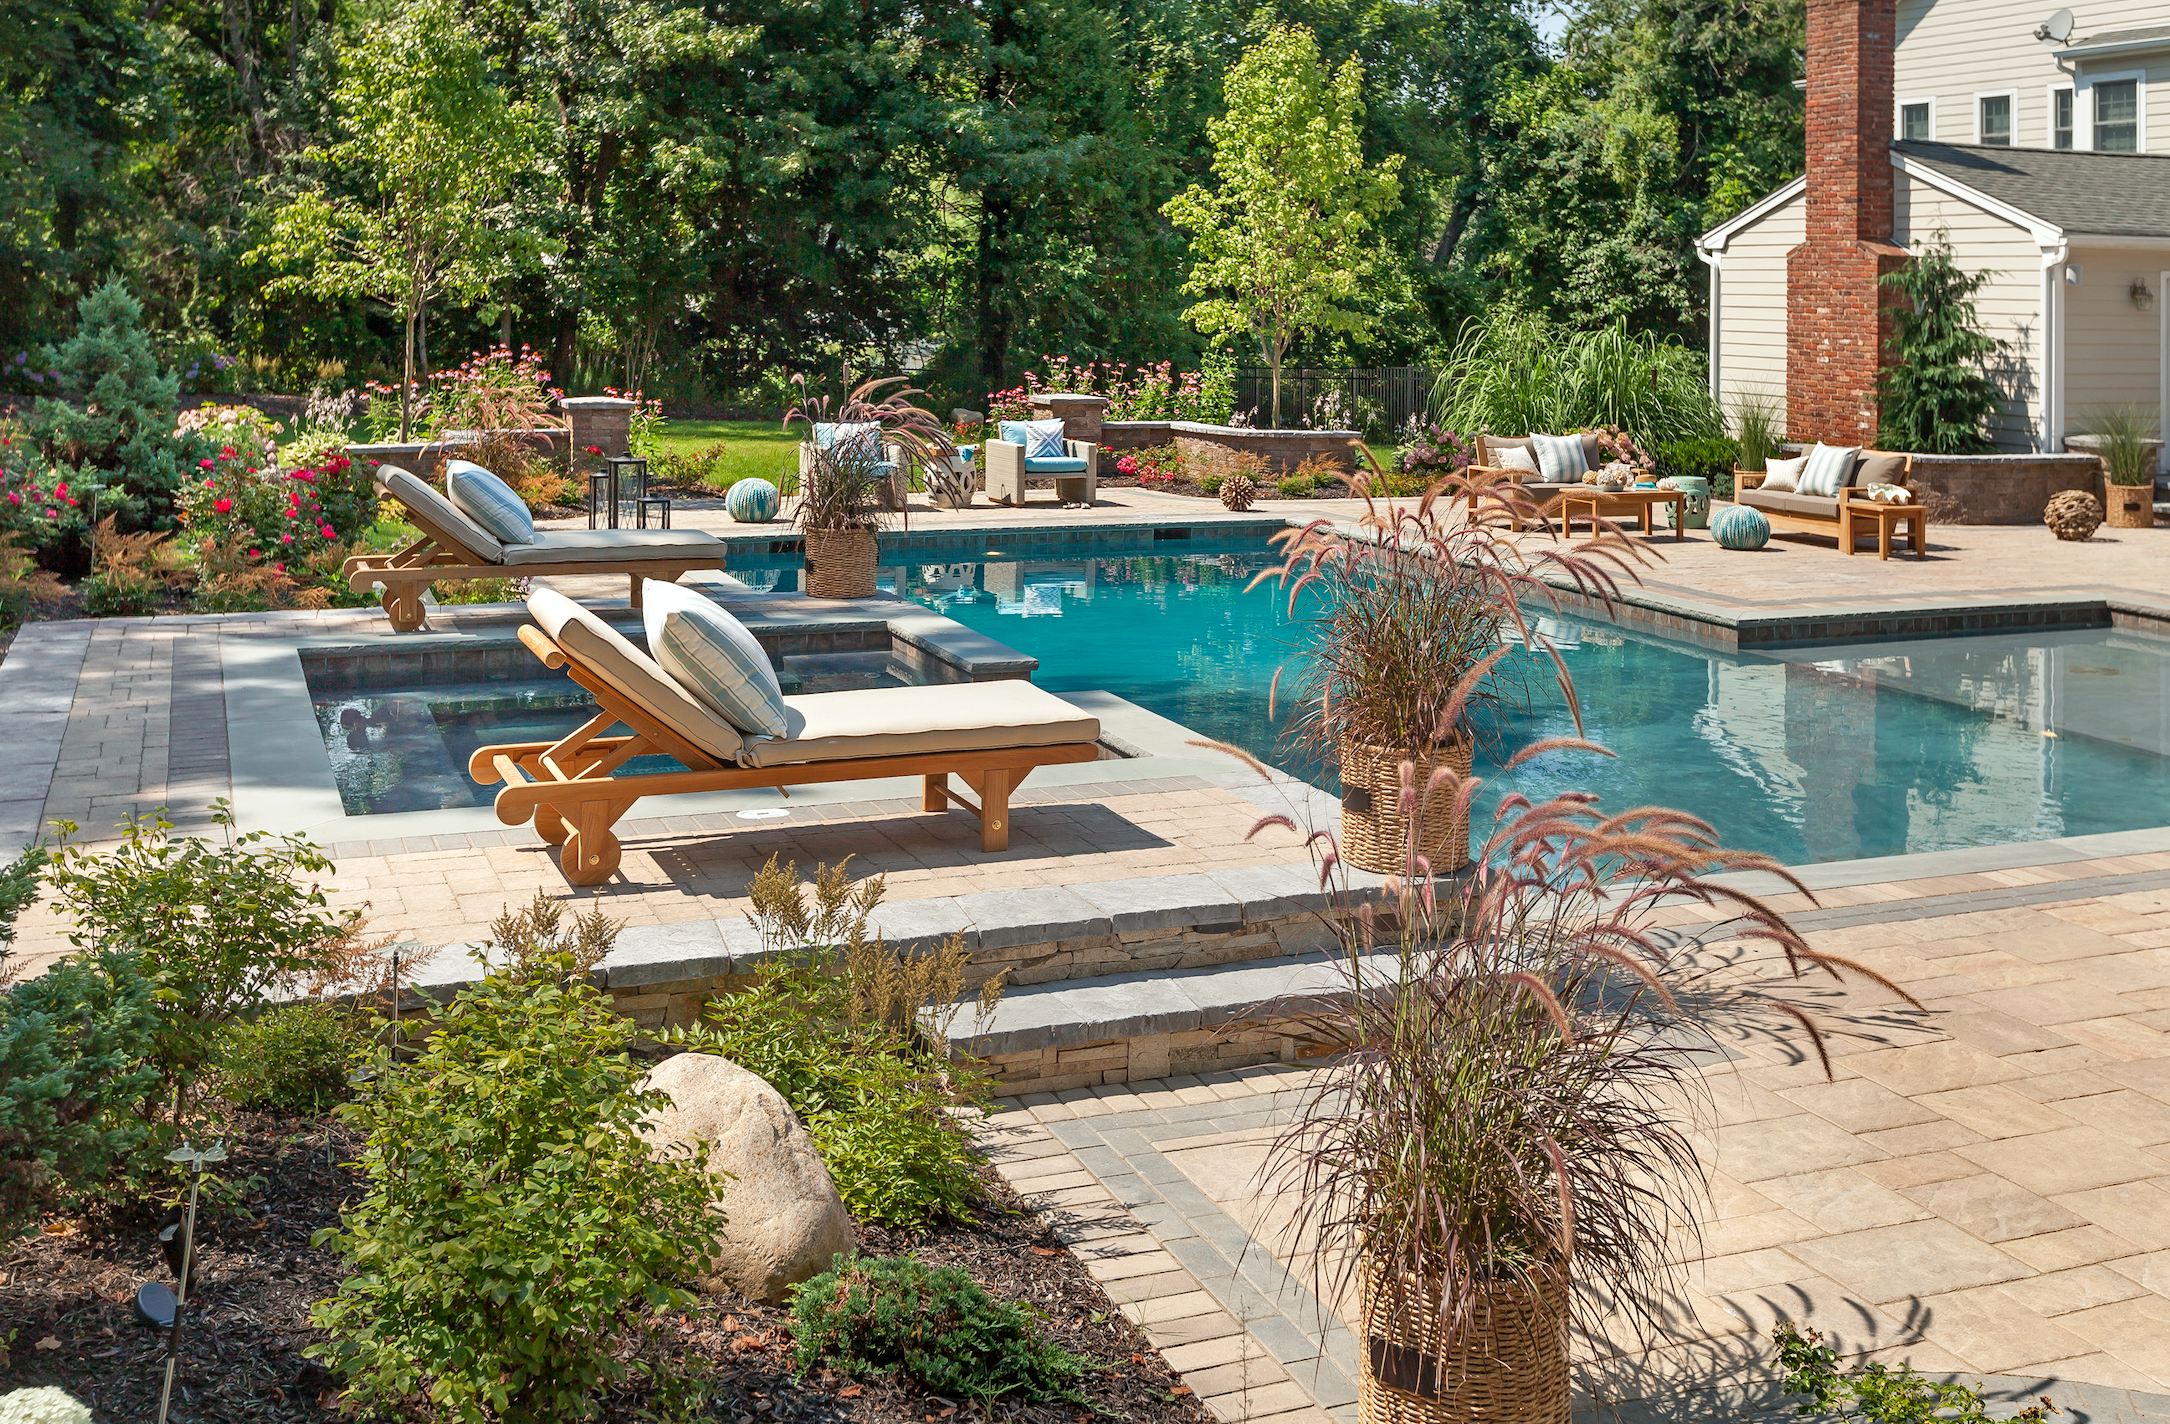 The Top Pool Trends for 2019 from a Gunite Pool Builder Westhampton, NY